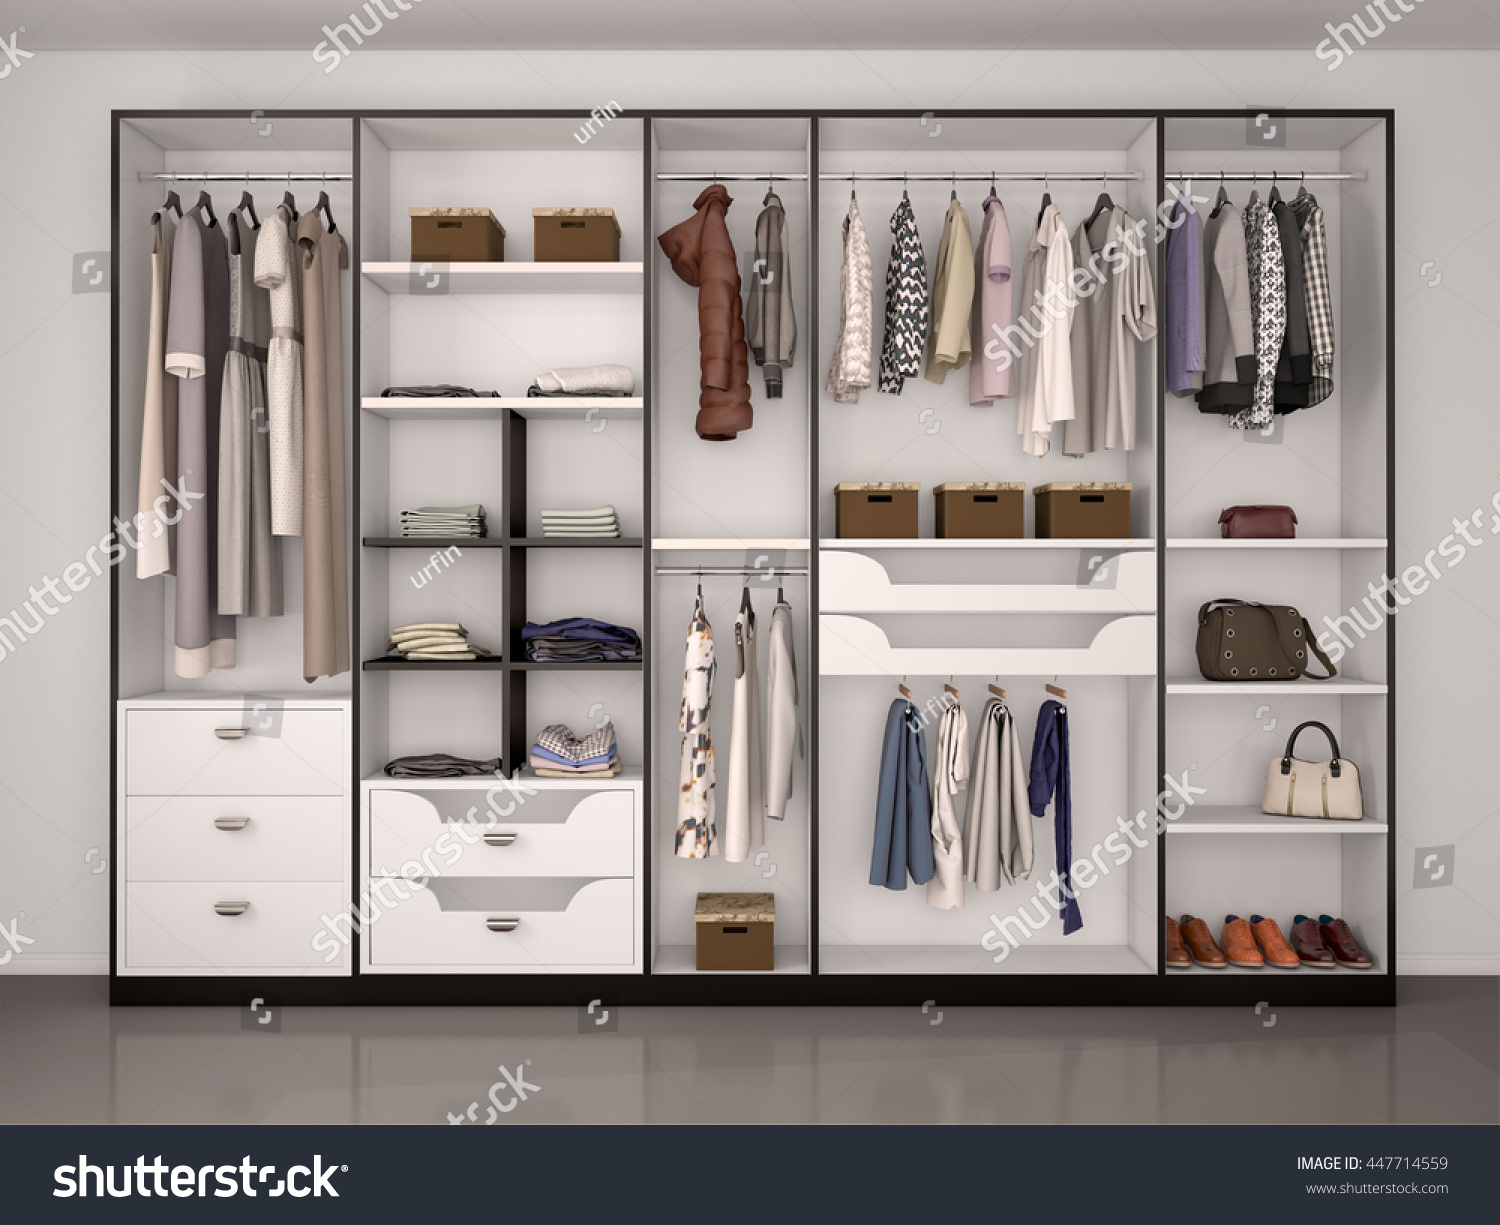 black and white wardrobe closet full of different things 3d